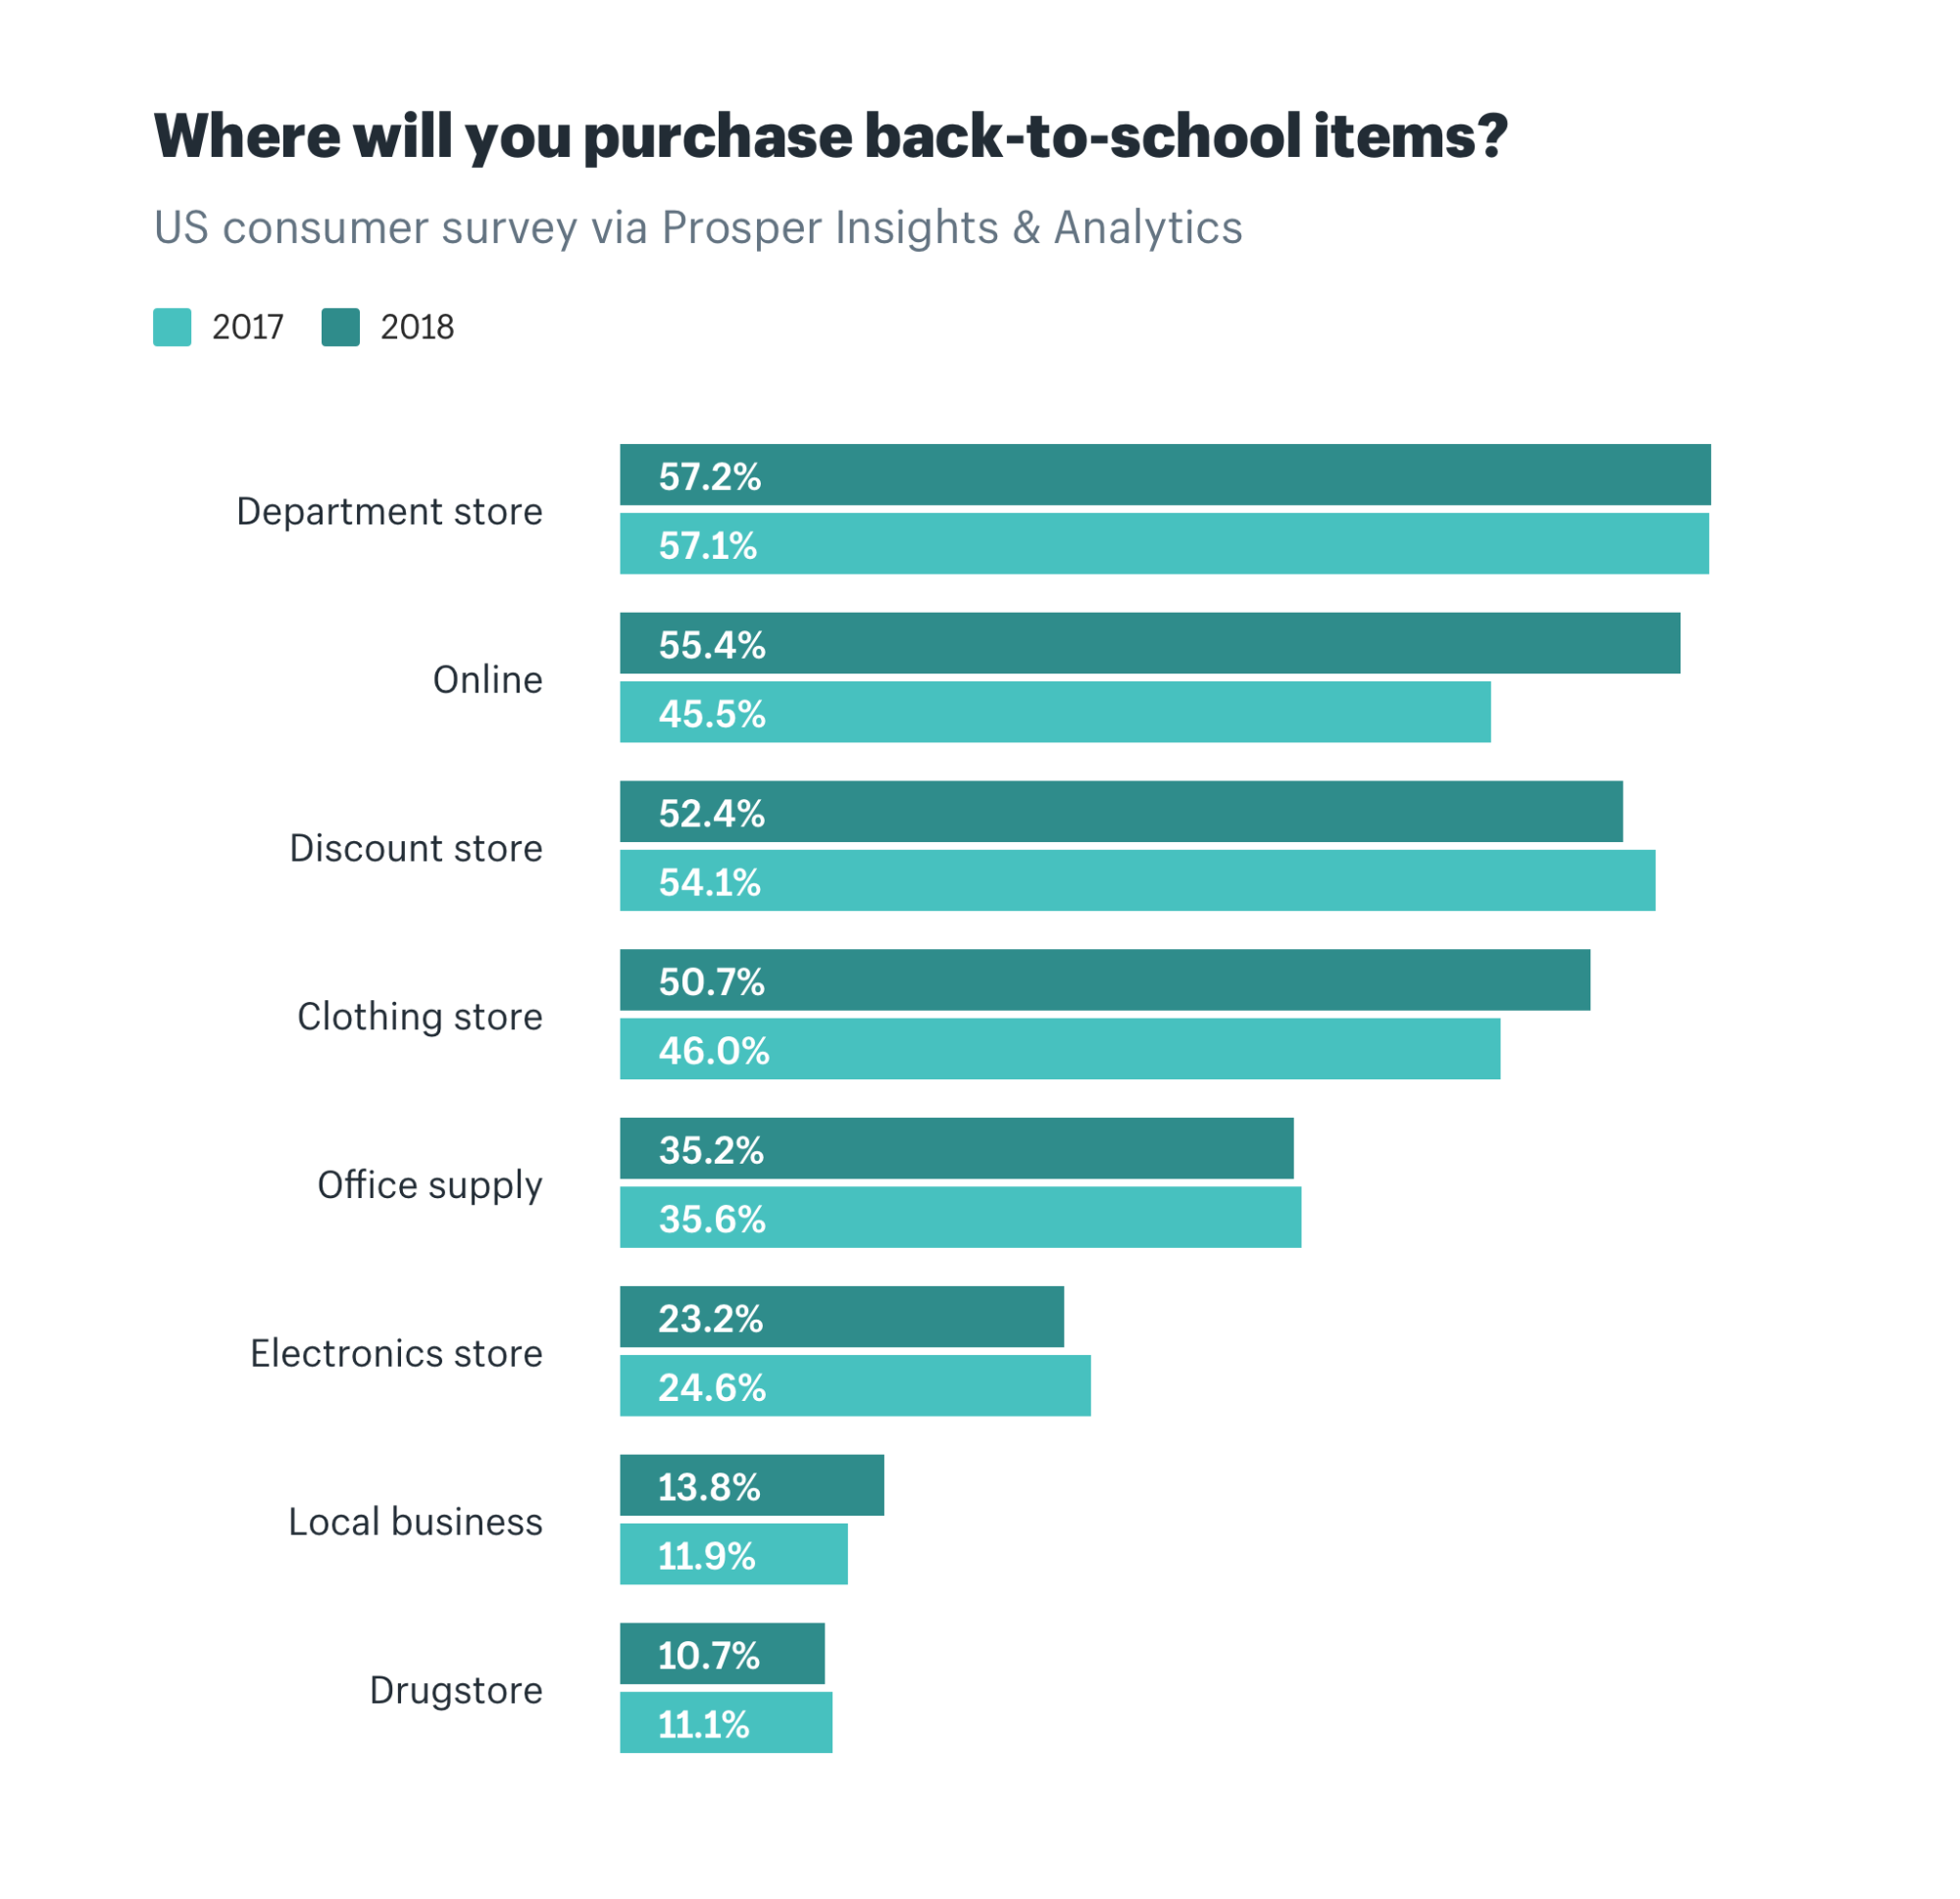 Where will you purchase back to school items